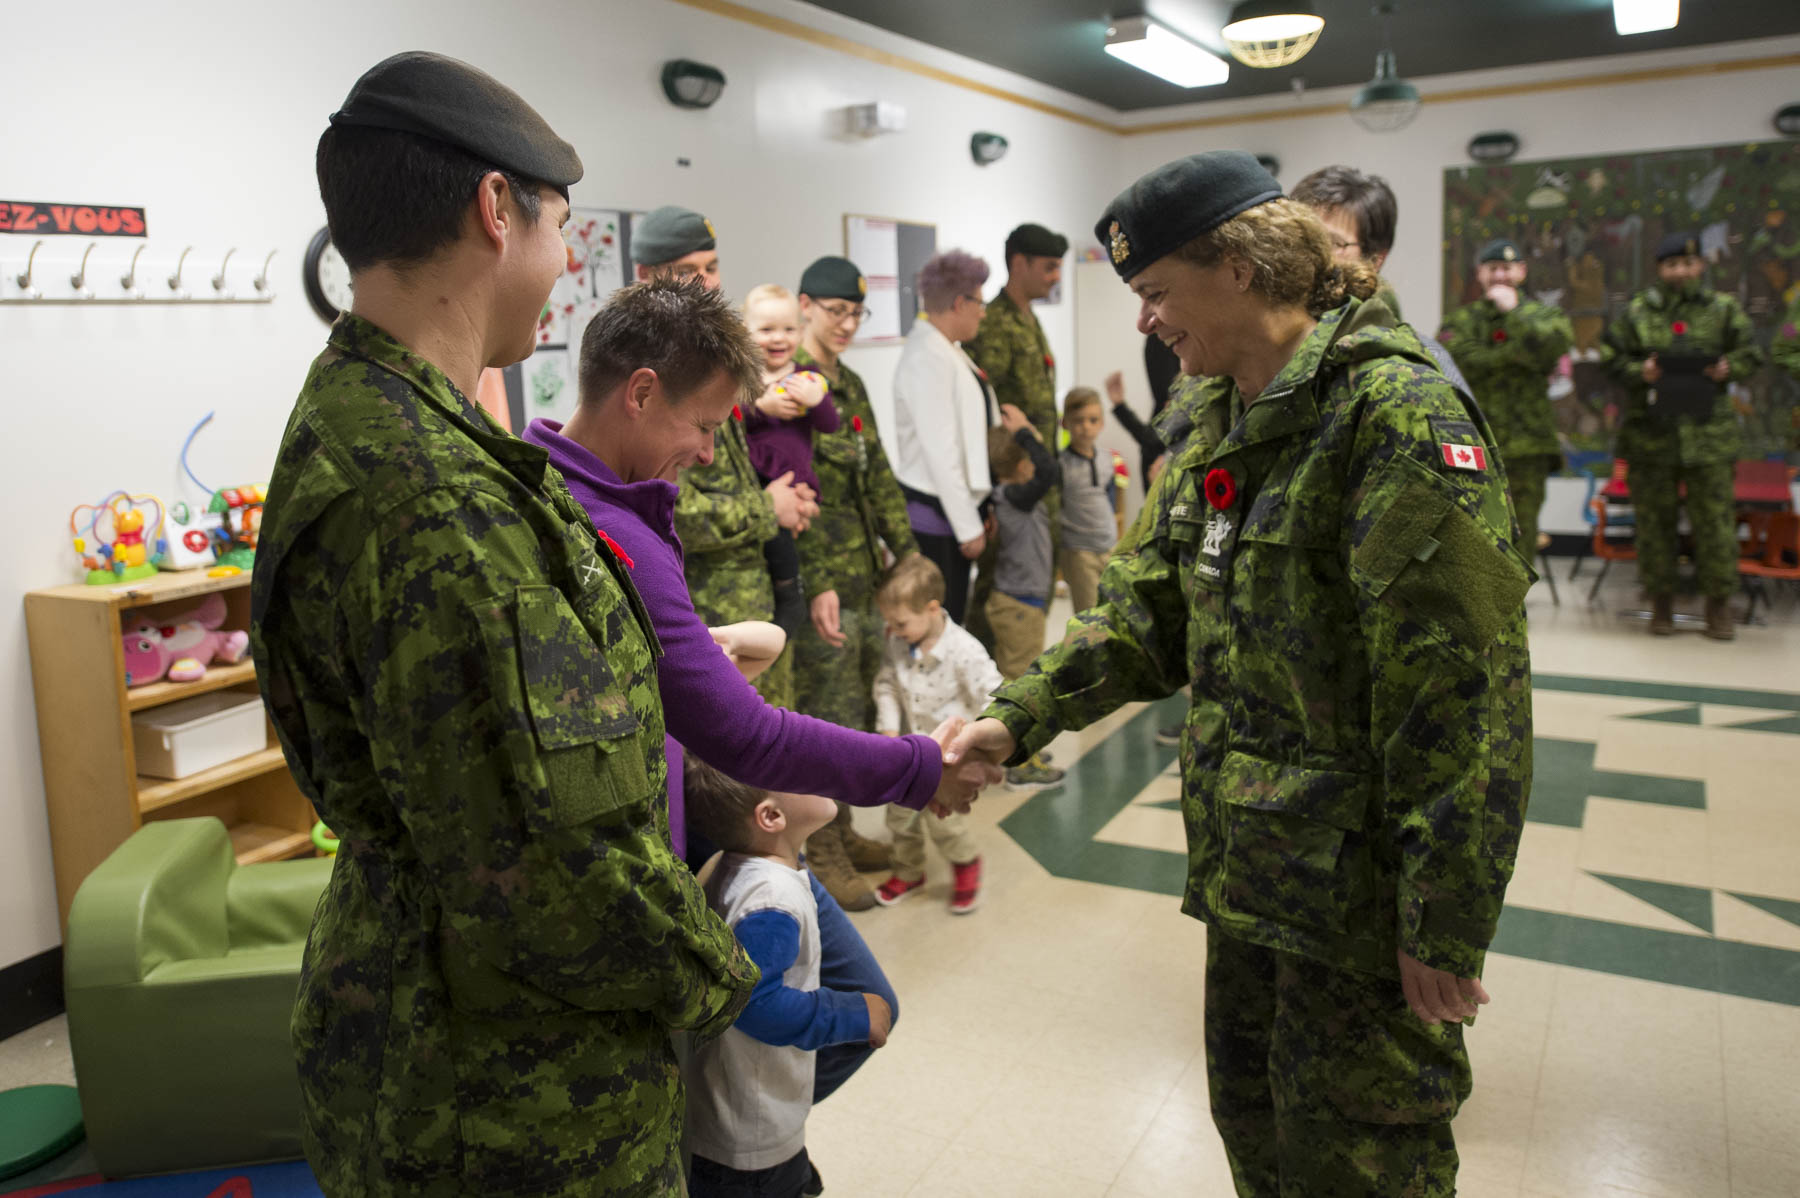 Her Excellency also stopped at the Gagetown Military Family Resource Centre.